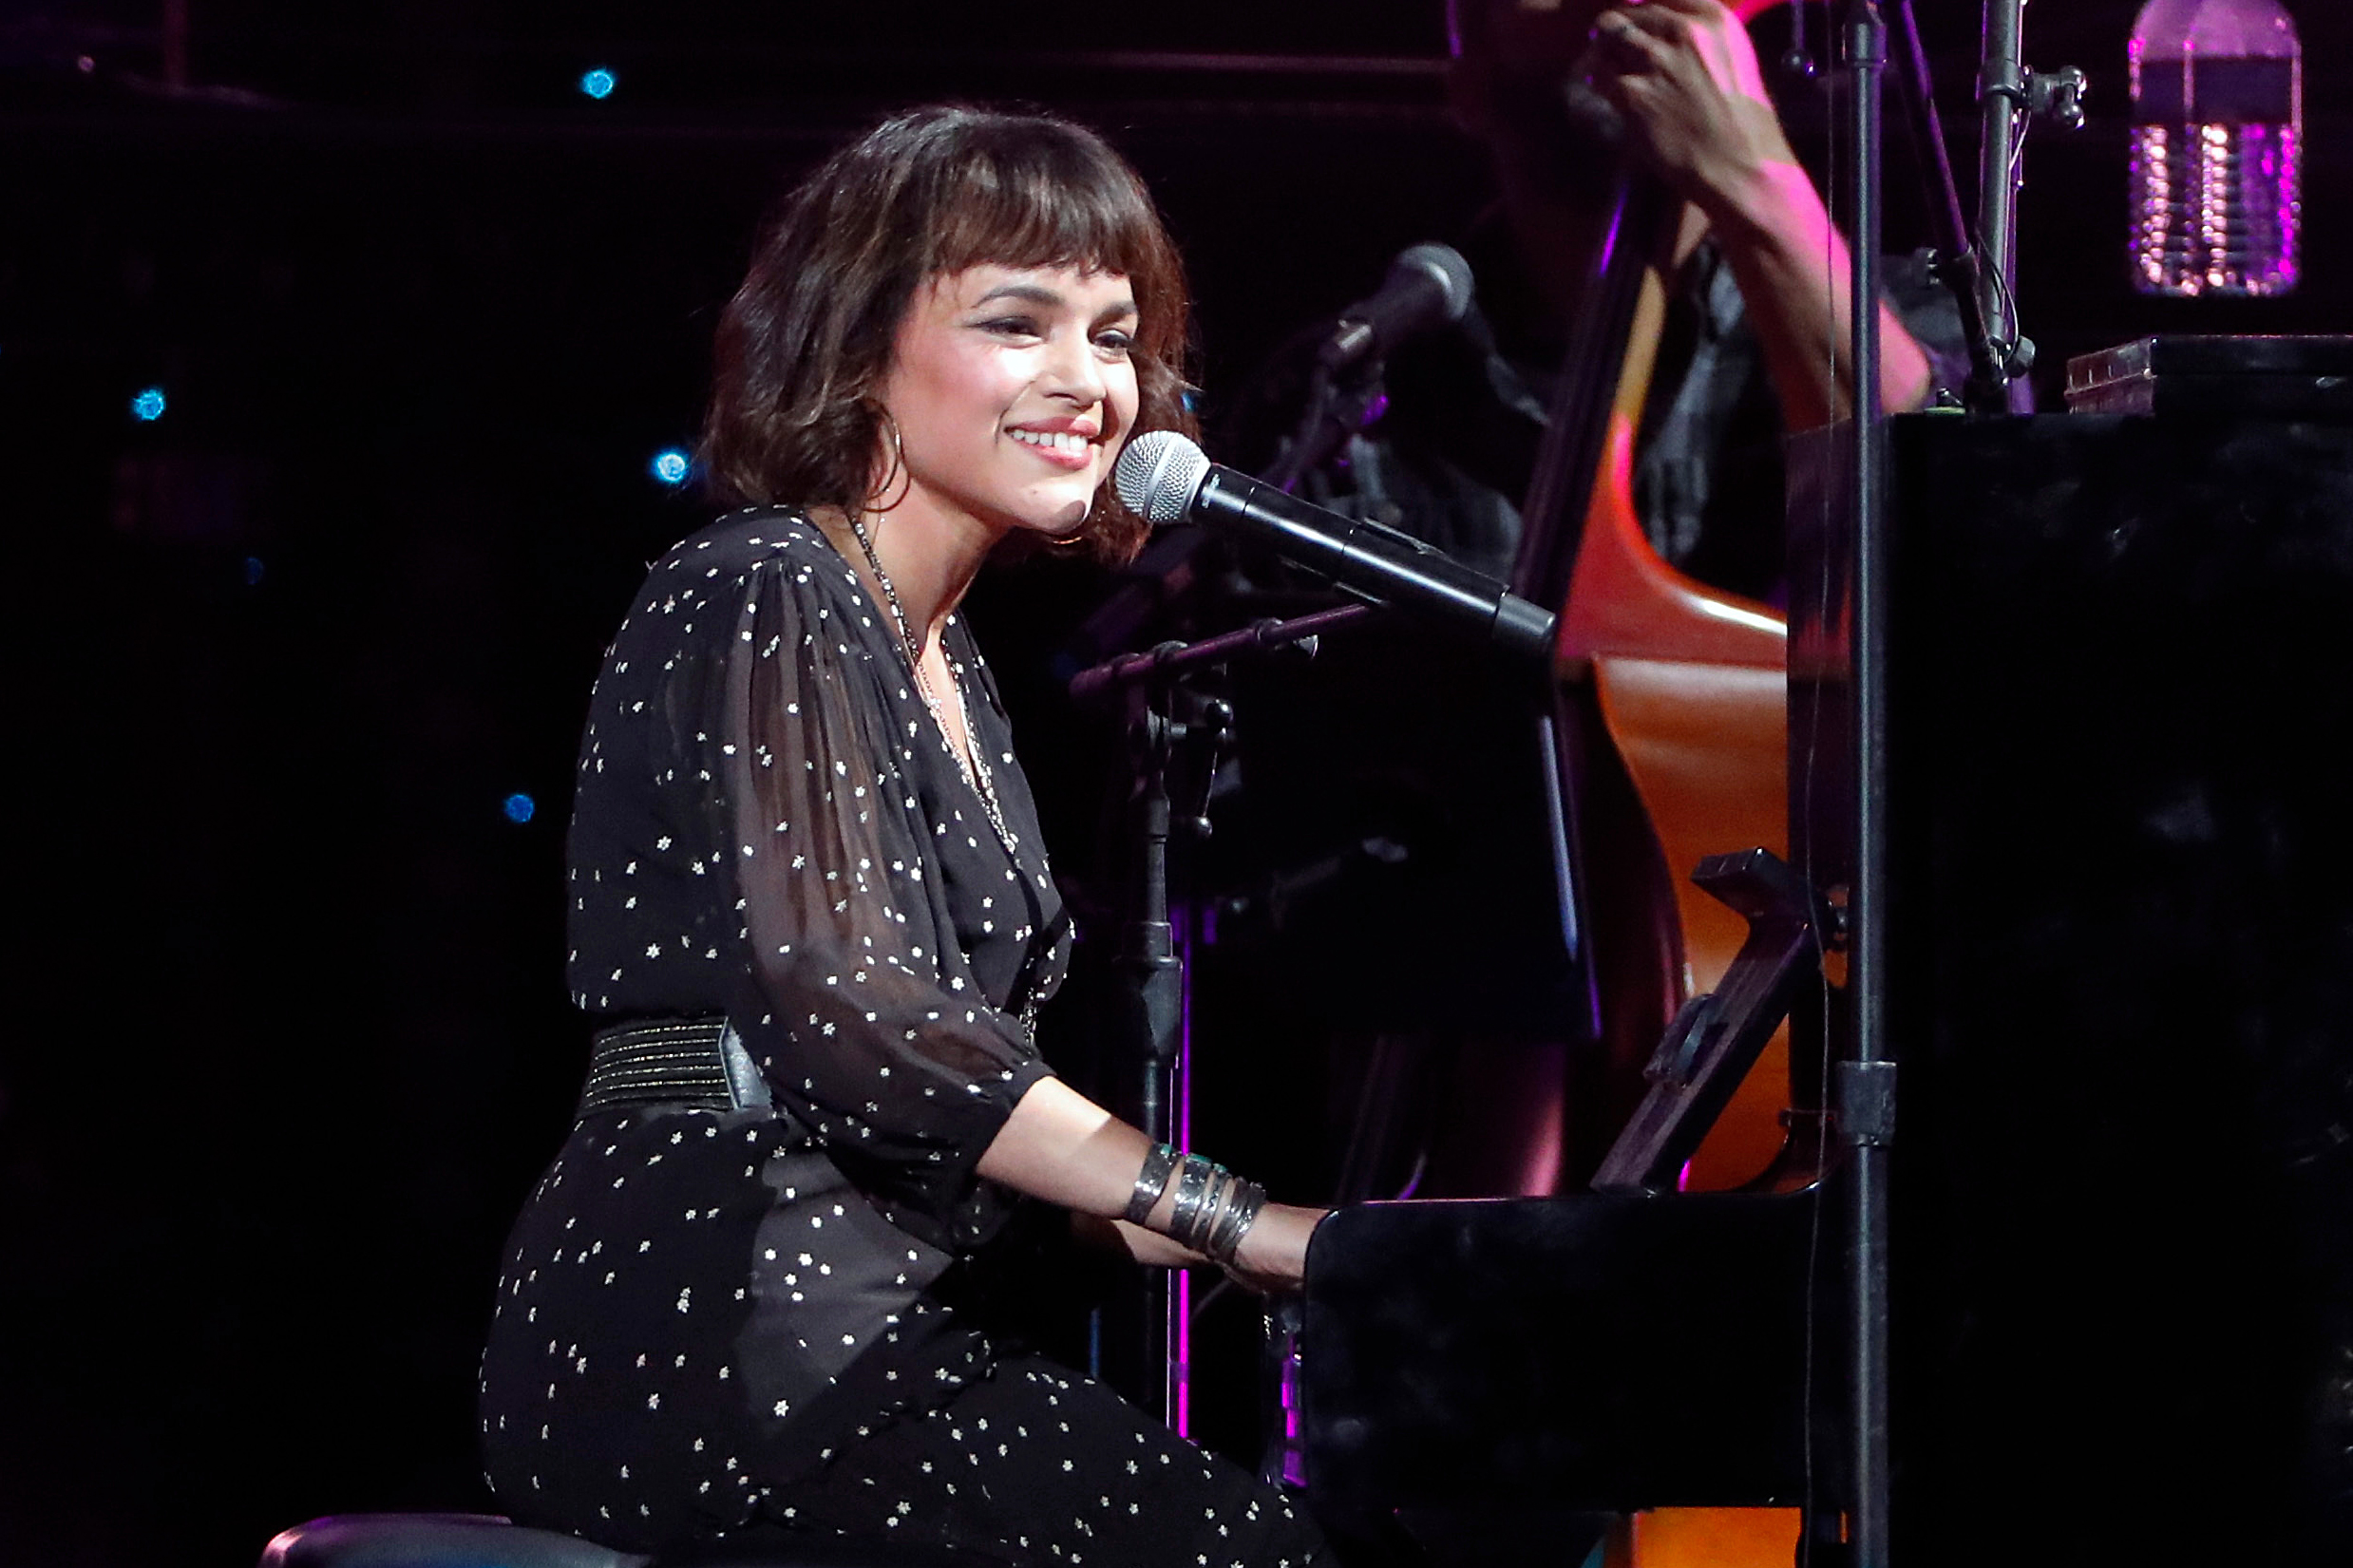 Norah Jones Tour Dates 2020 Norah Jones Plots Summer North American Tour – Rolling Stone